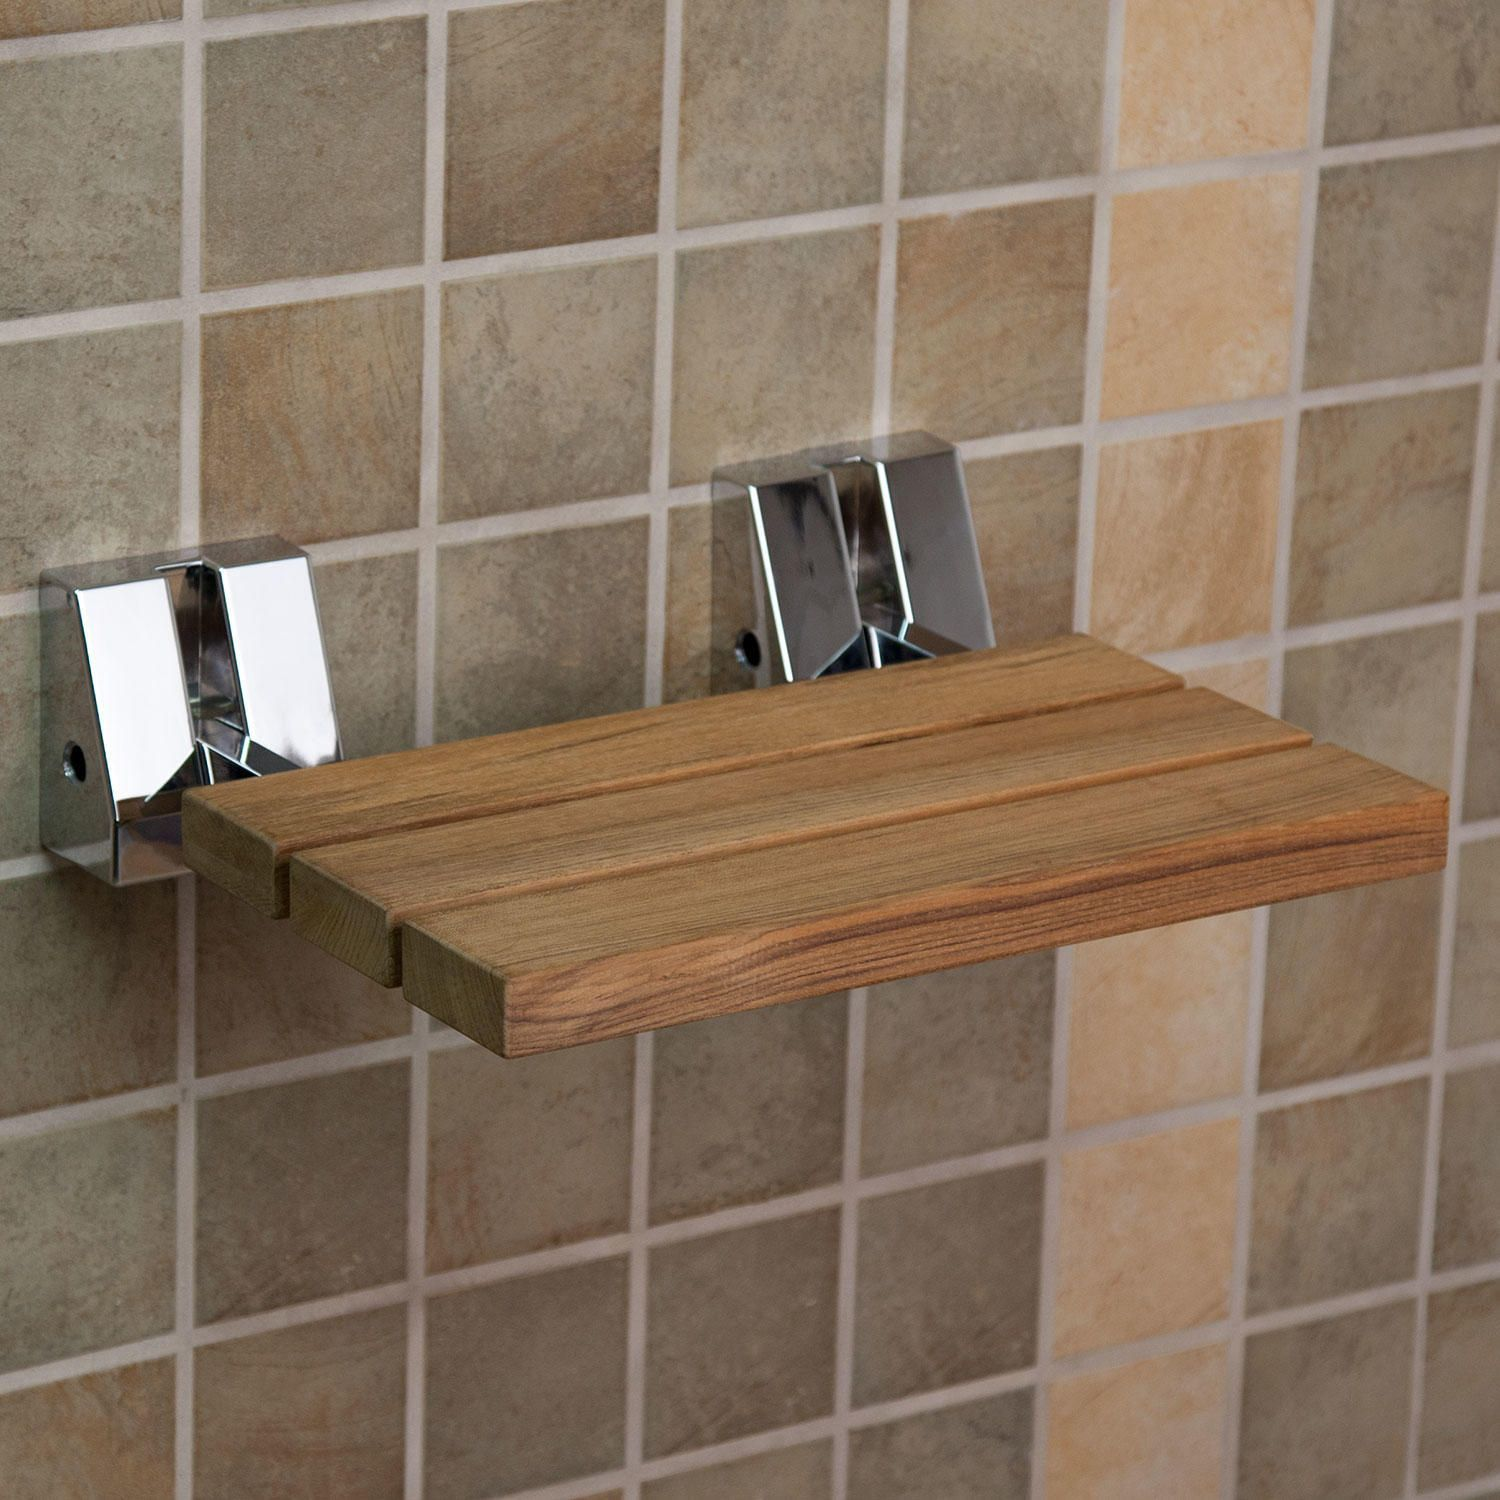 Wall-Mount Teak Folding Shower Seat | Shower seat, Teak and Wall mount